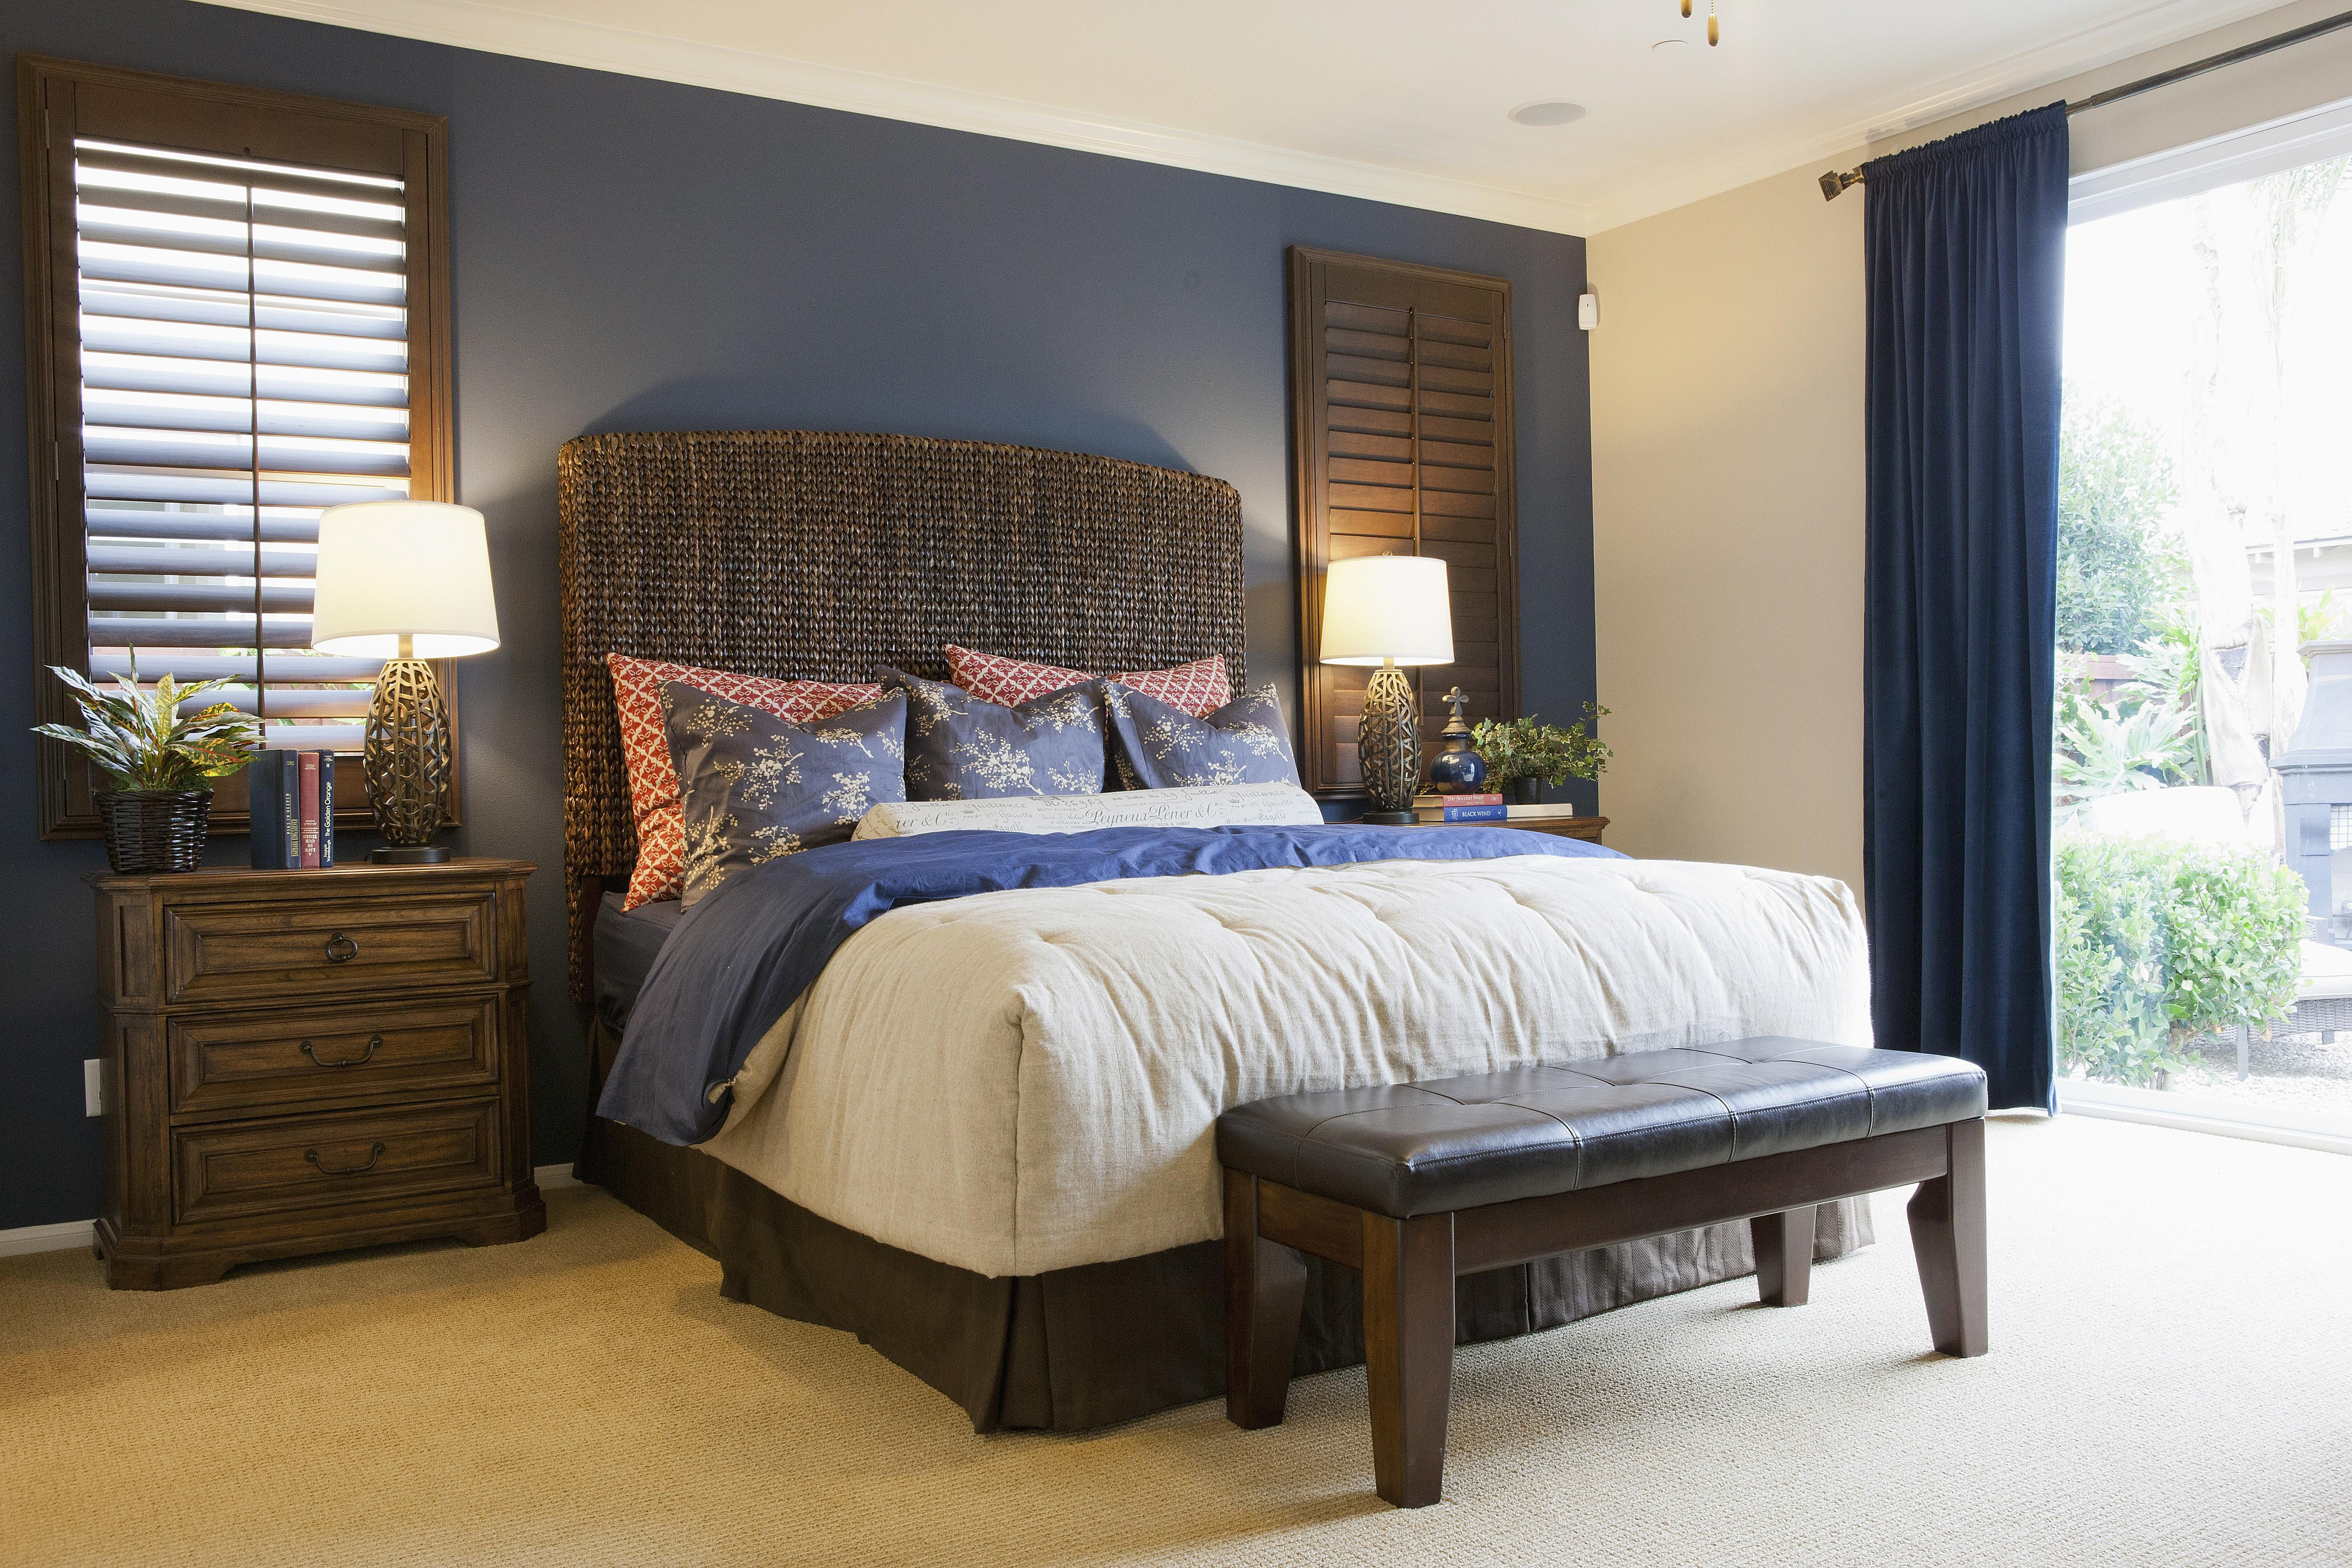 Best ideas about Accent Wall In Bedroom . Save or Pin How to Choose an Accent Wall and Color in a Bedroom Now.